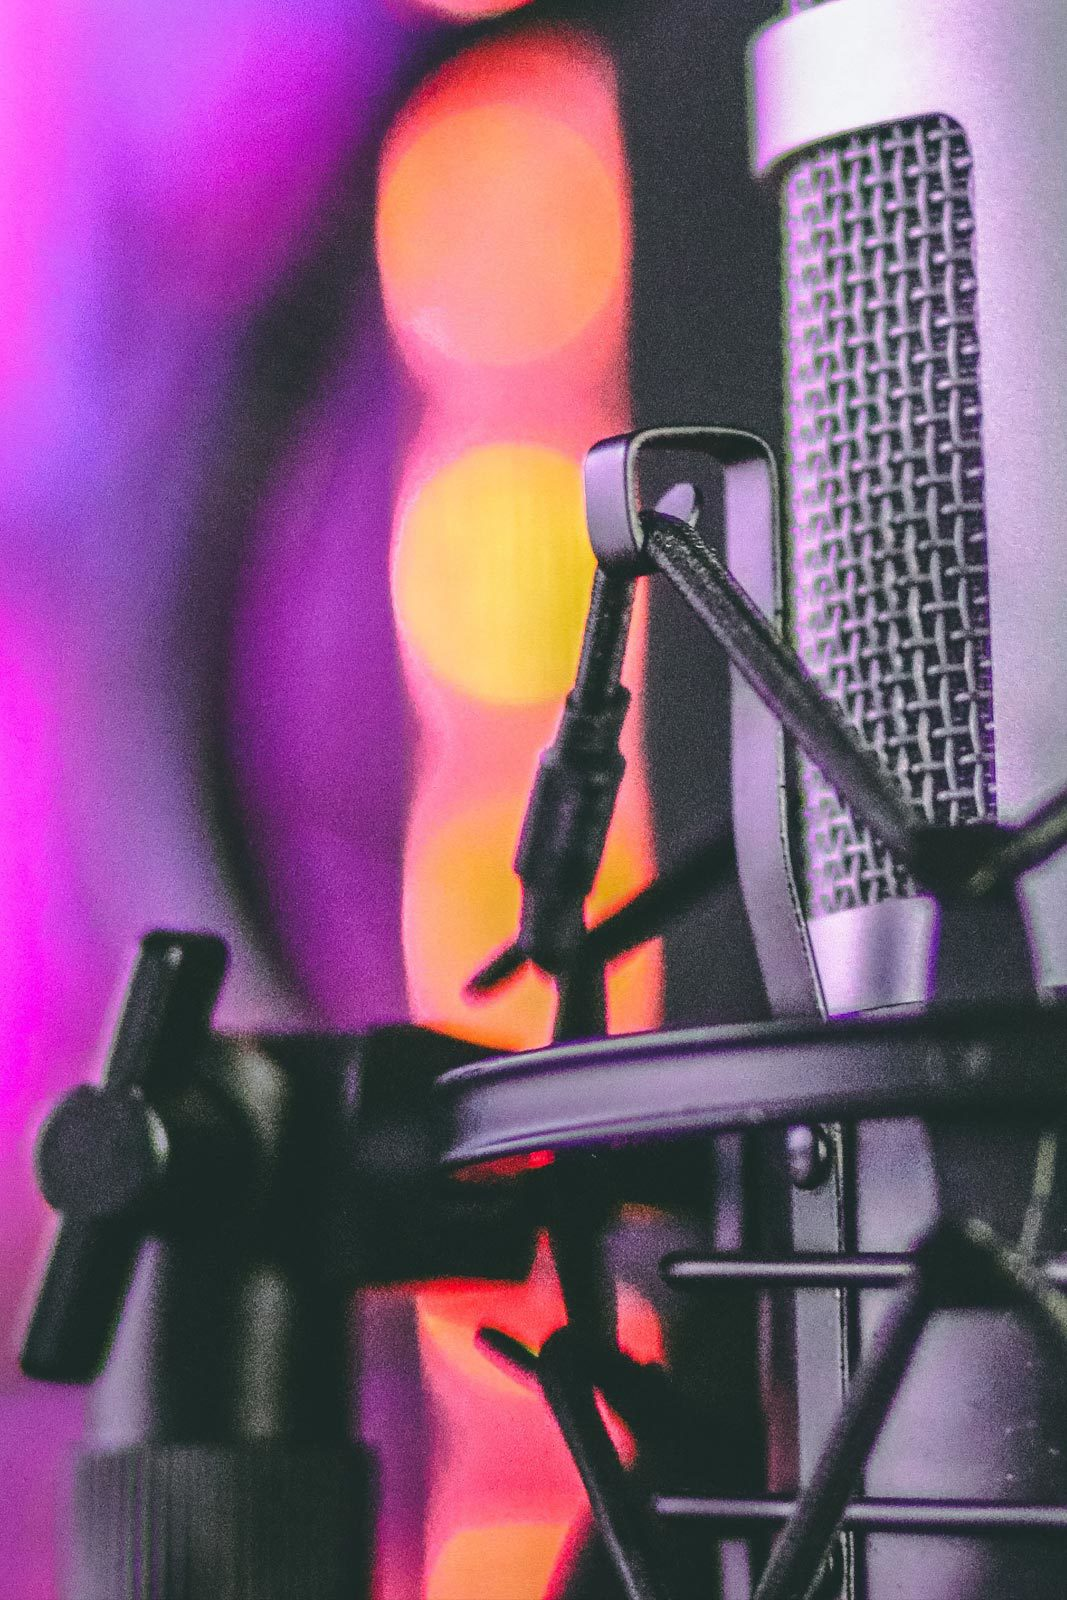 Closeup of microphone in front of purple lights.